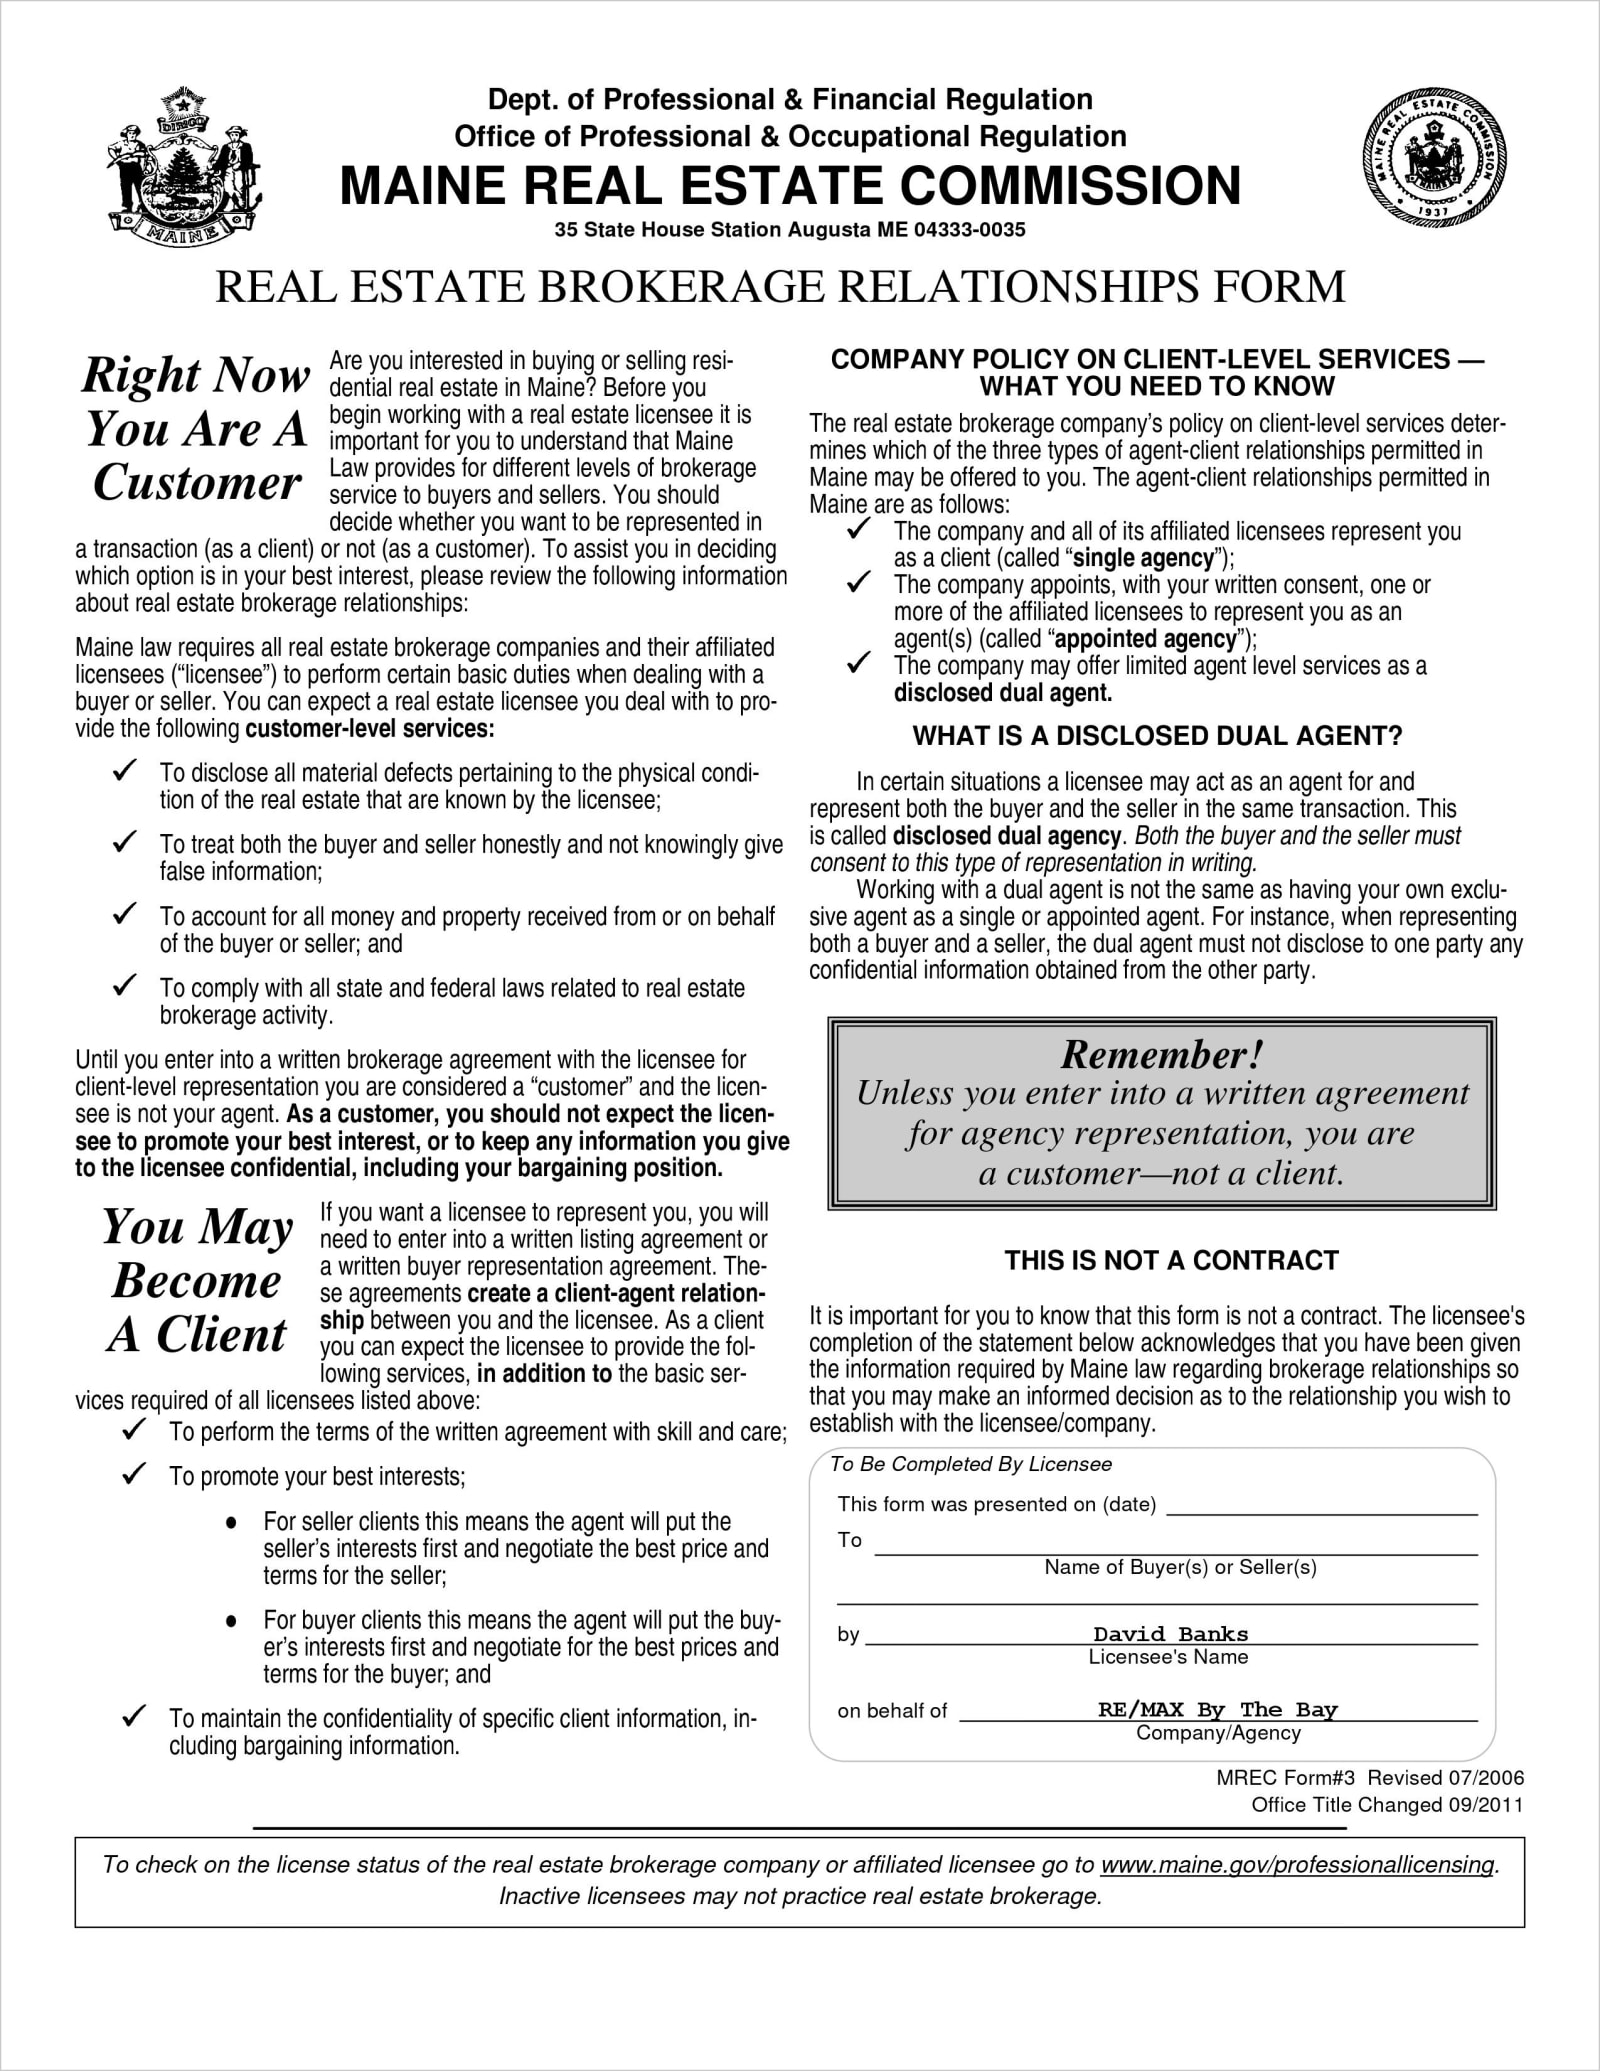 Real Estate Brokerage Relationships Form